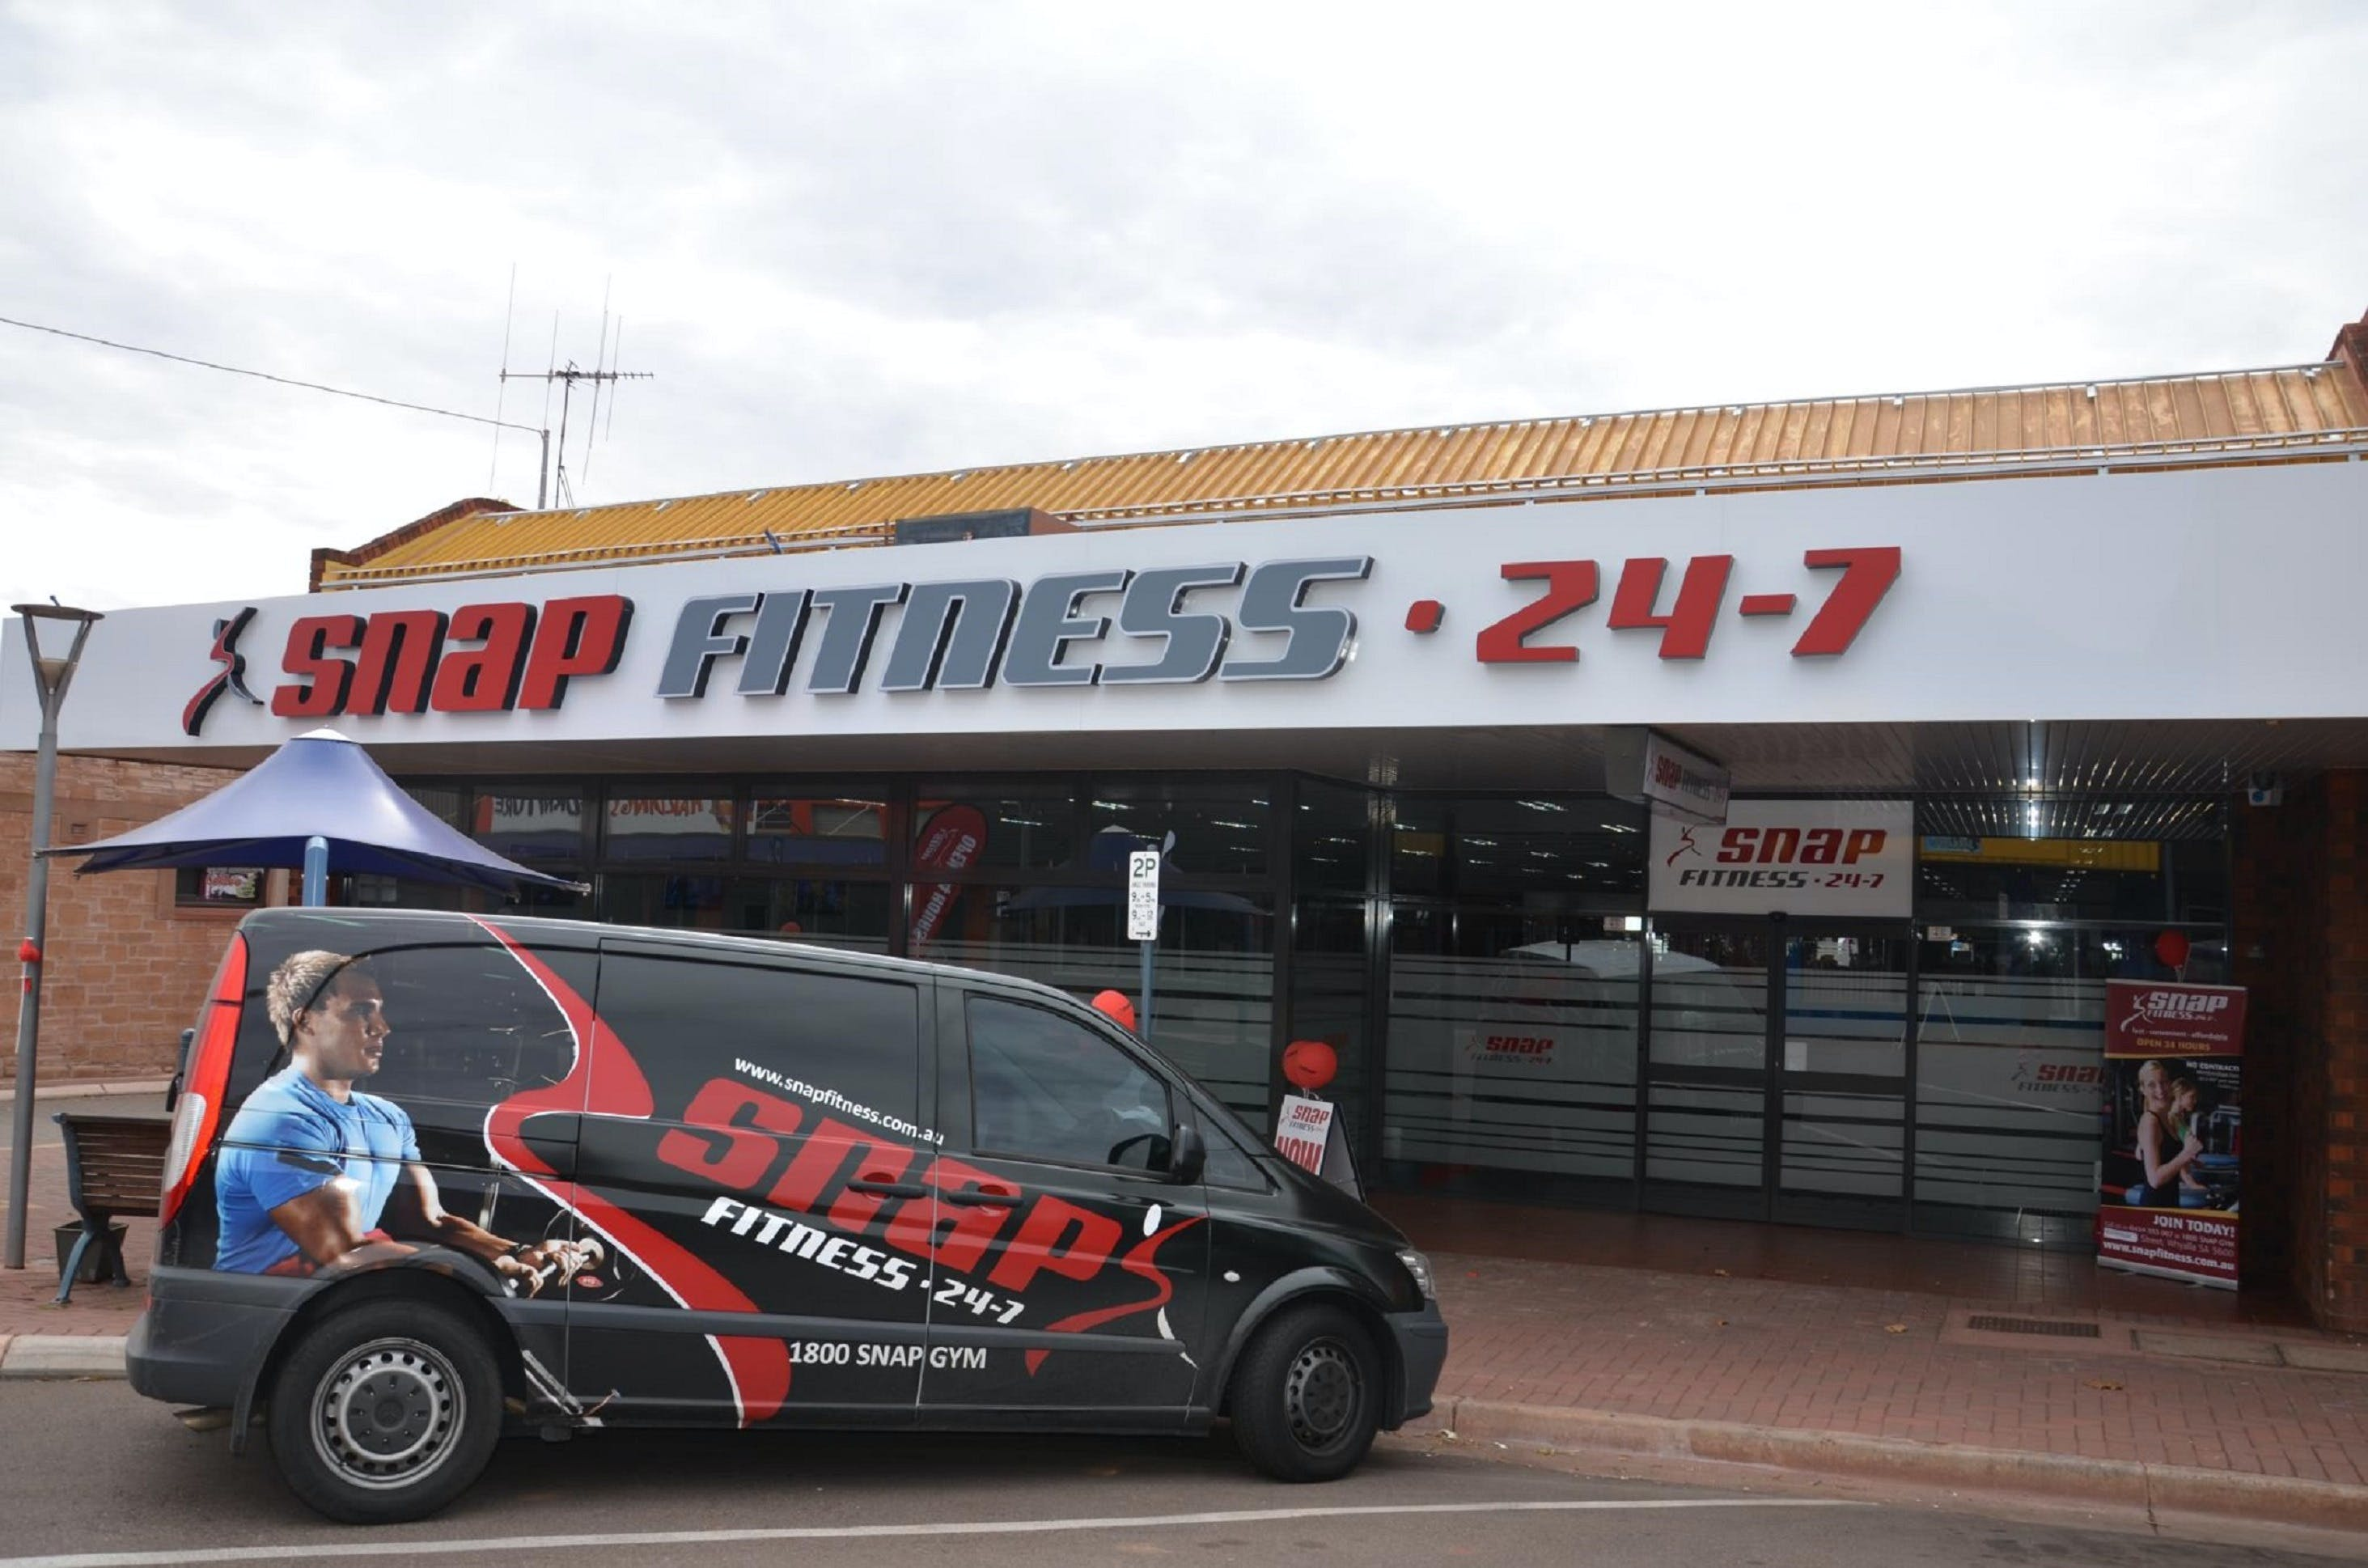 Snap Fitness Whyalla 24/7 gym - Accommodation Perth